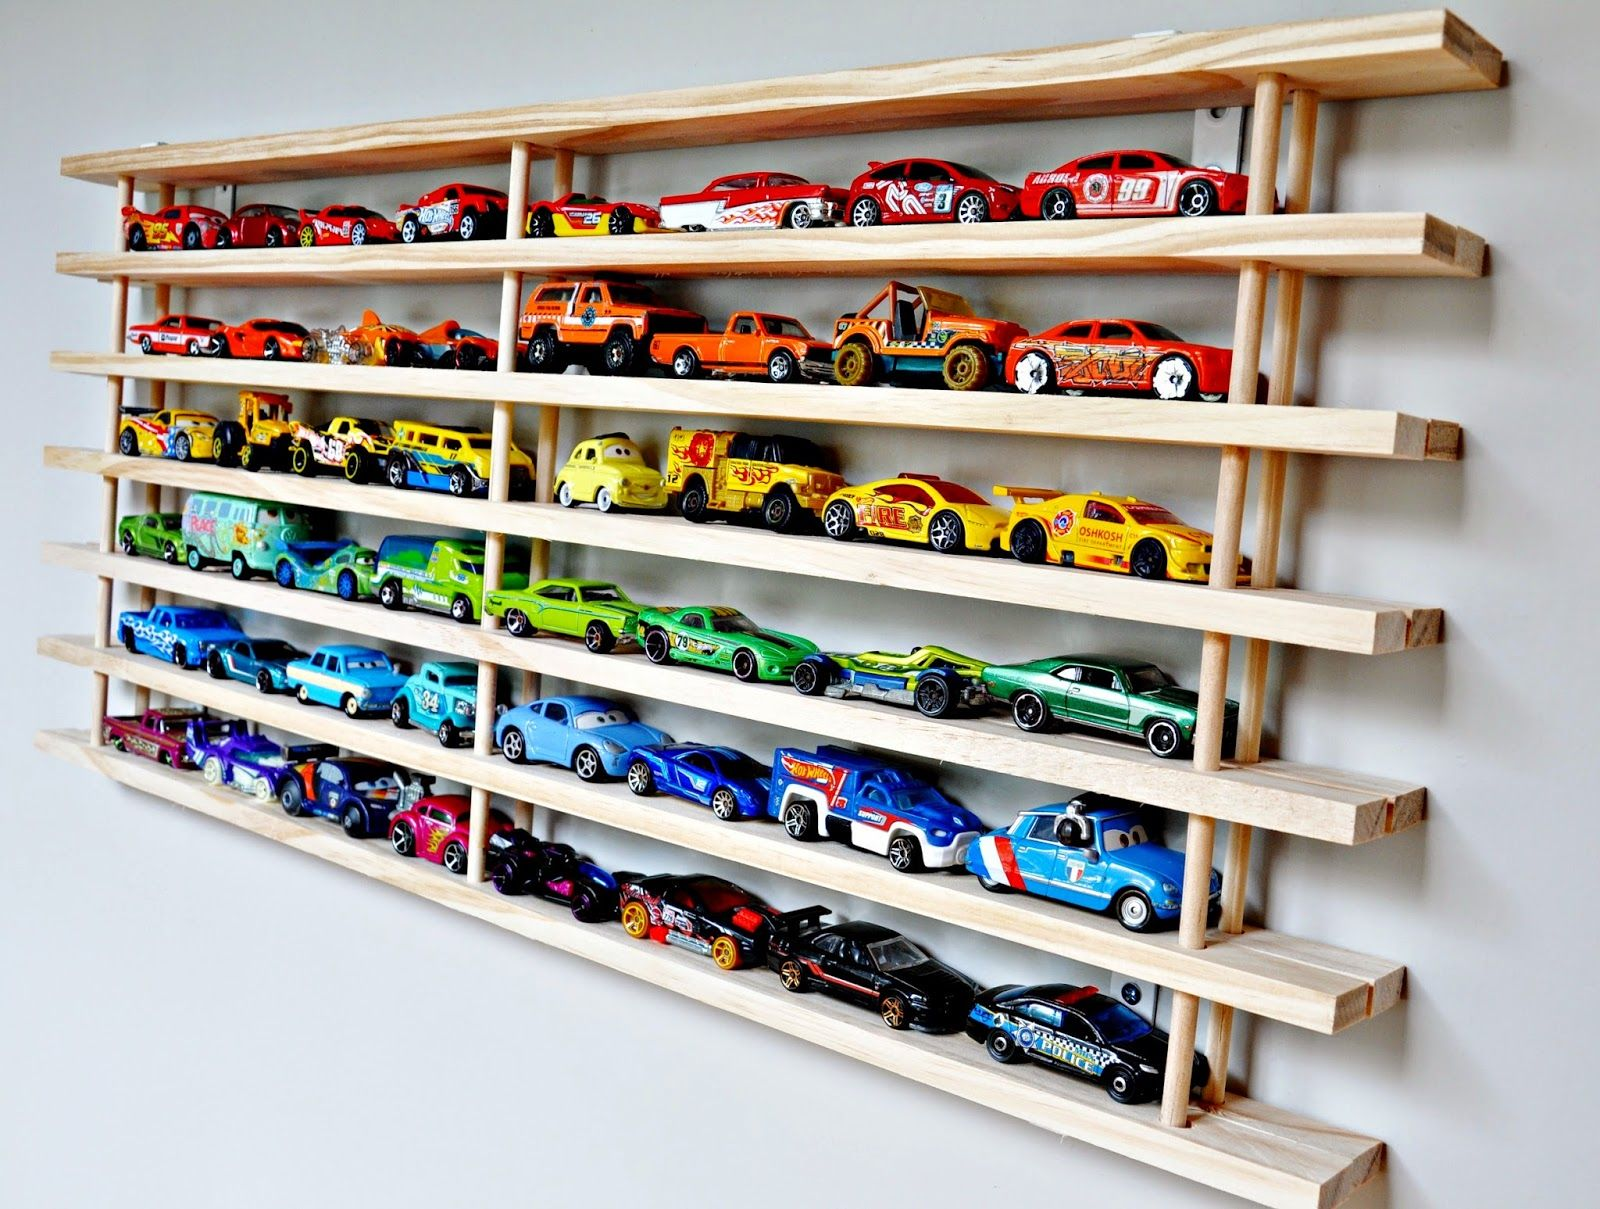 10 Genius Toy Storage Ideas Every Home Could Use Toy car